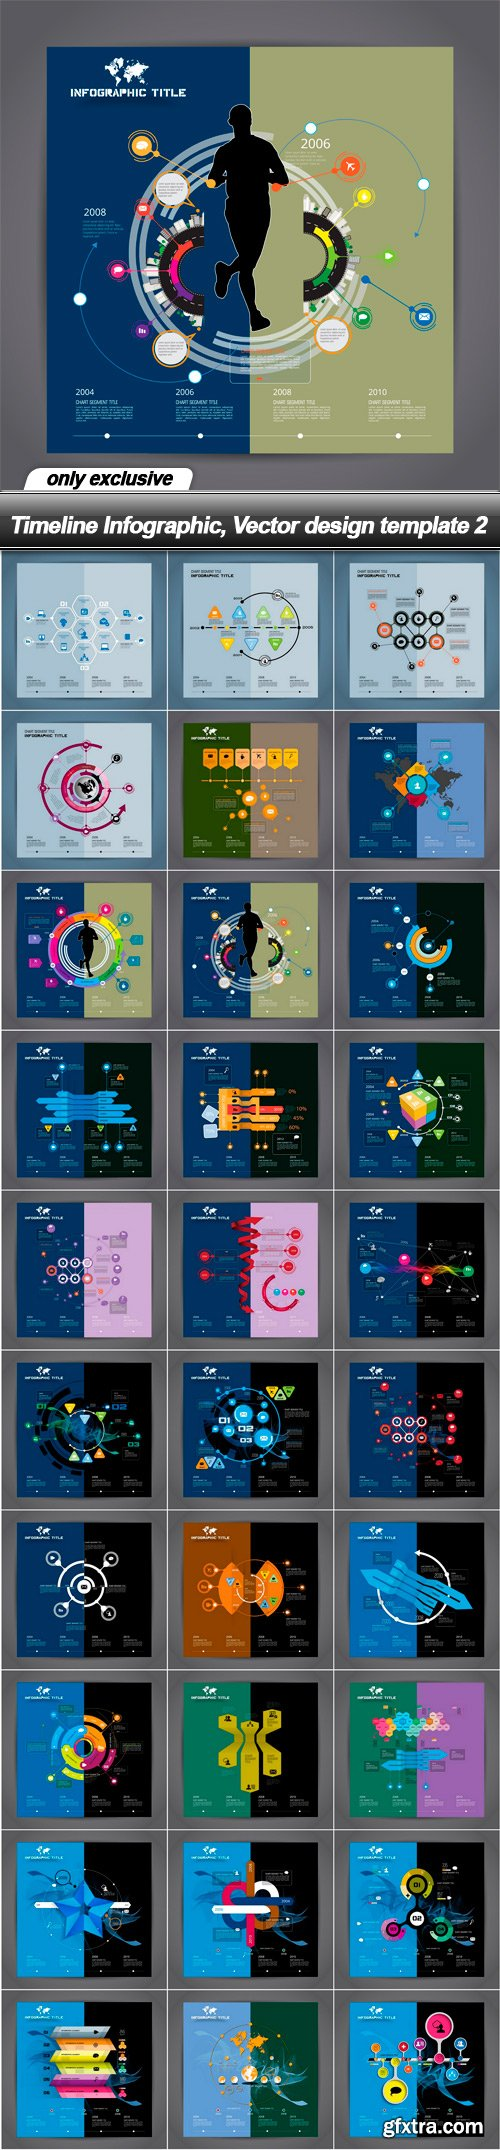 Timeline Infographic, Vector design template 2 - 30 EPS